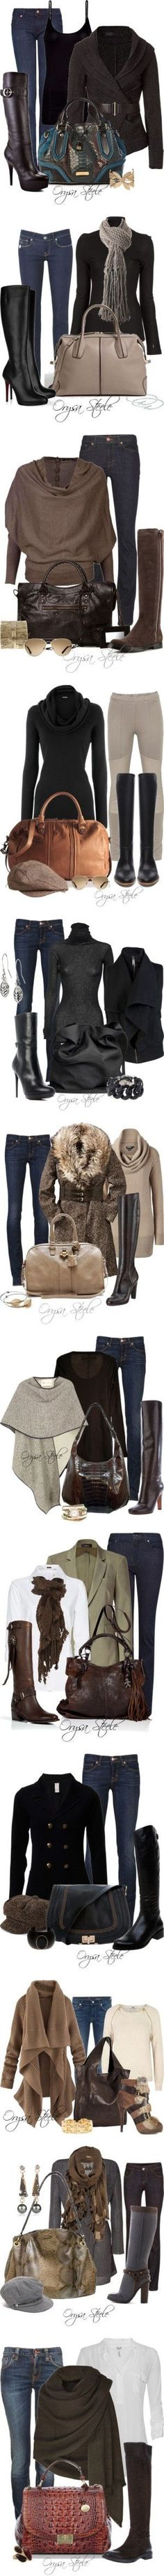 Fall outfits for when the evenings start to get cooler.